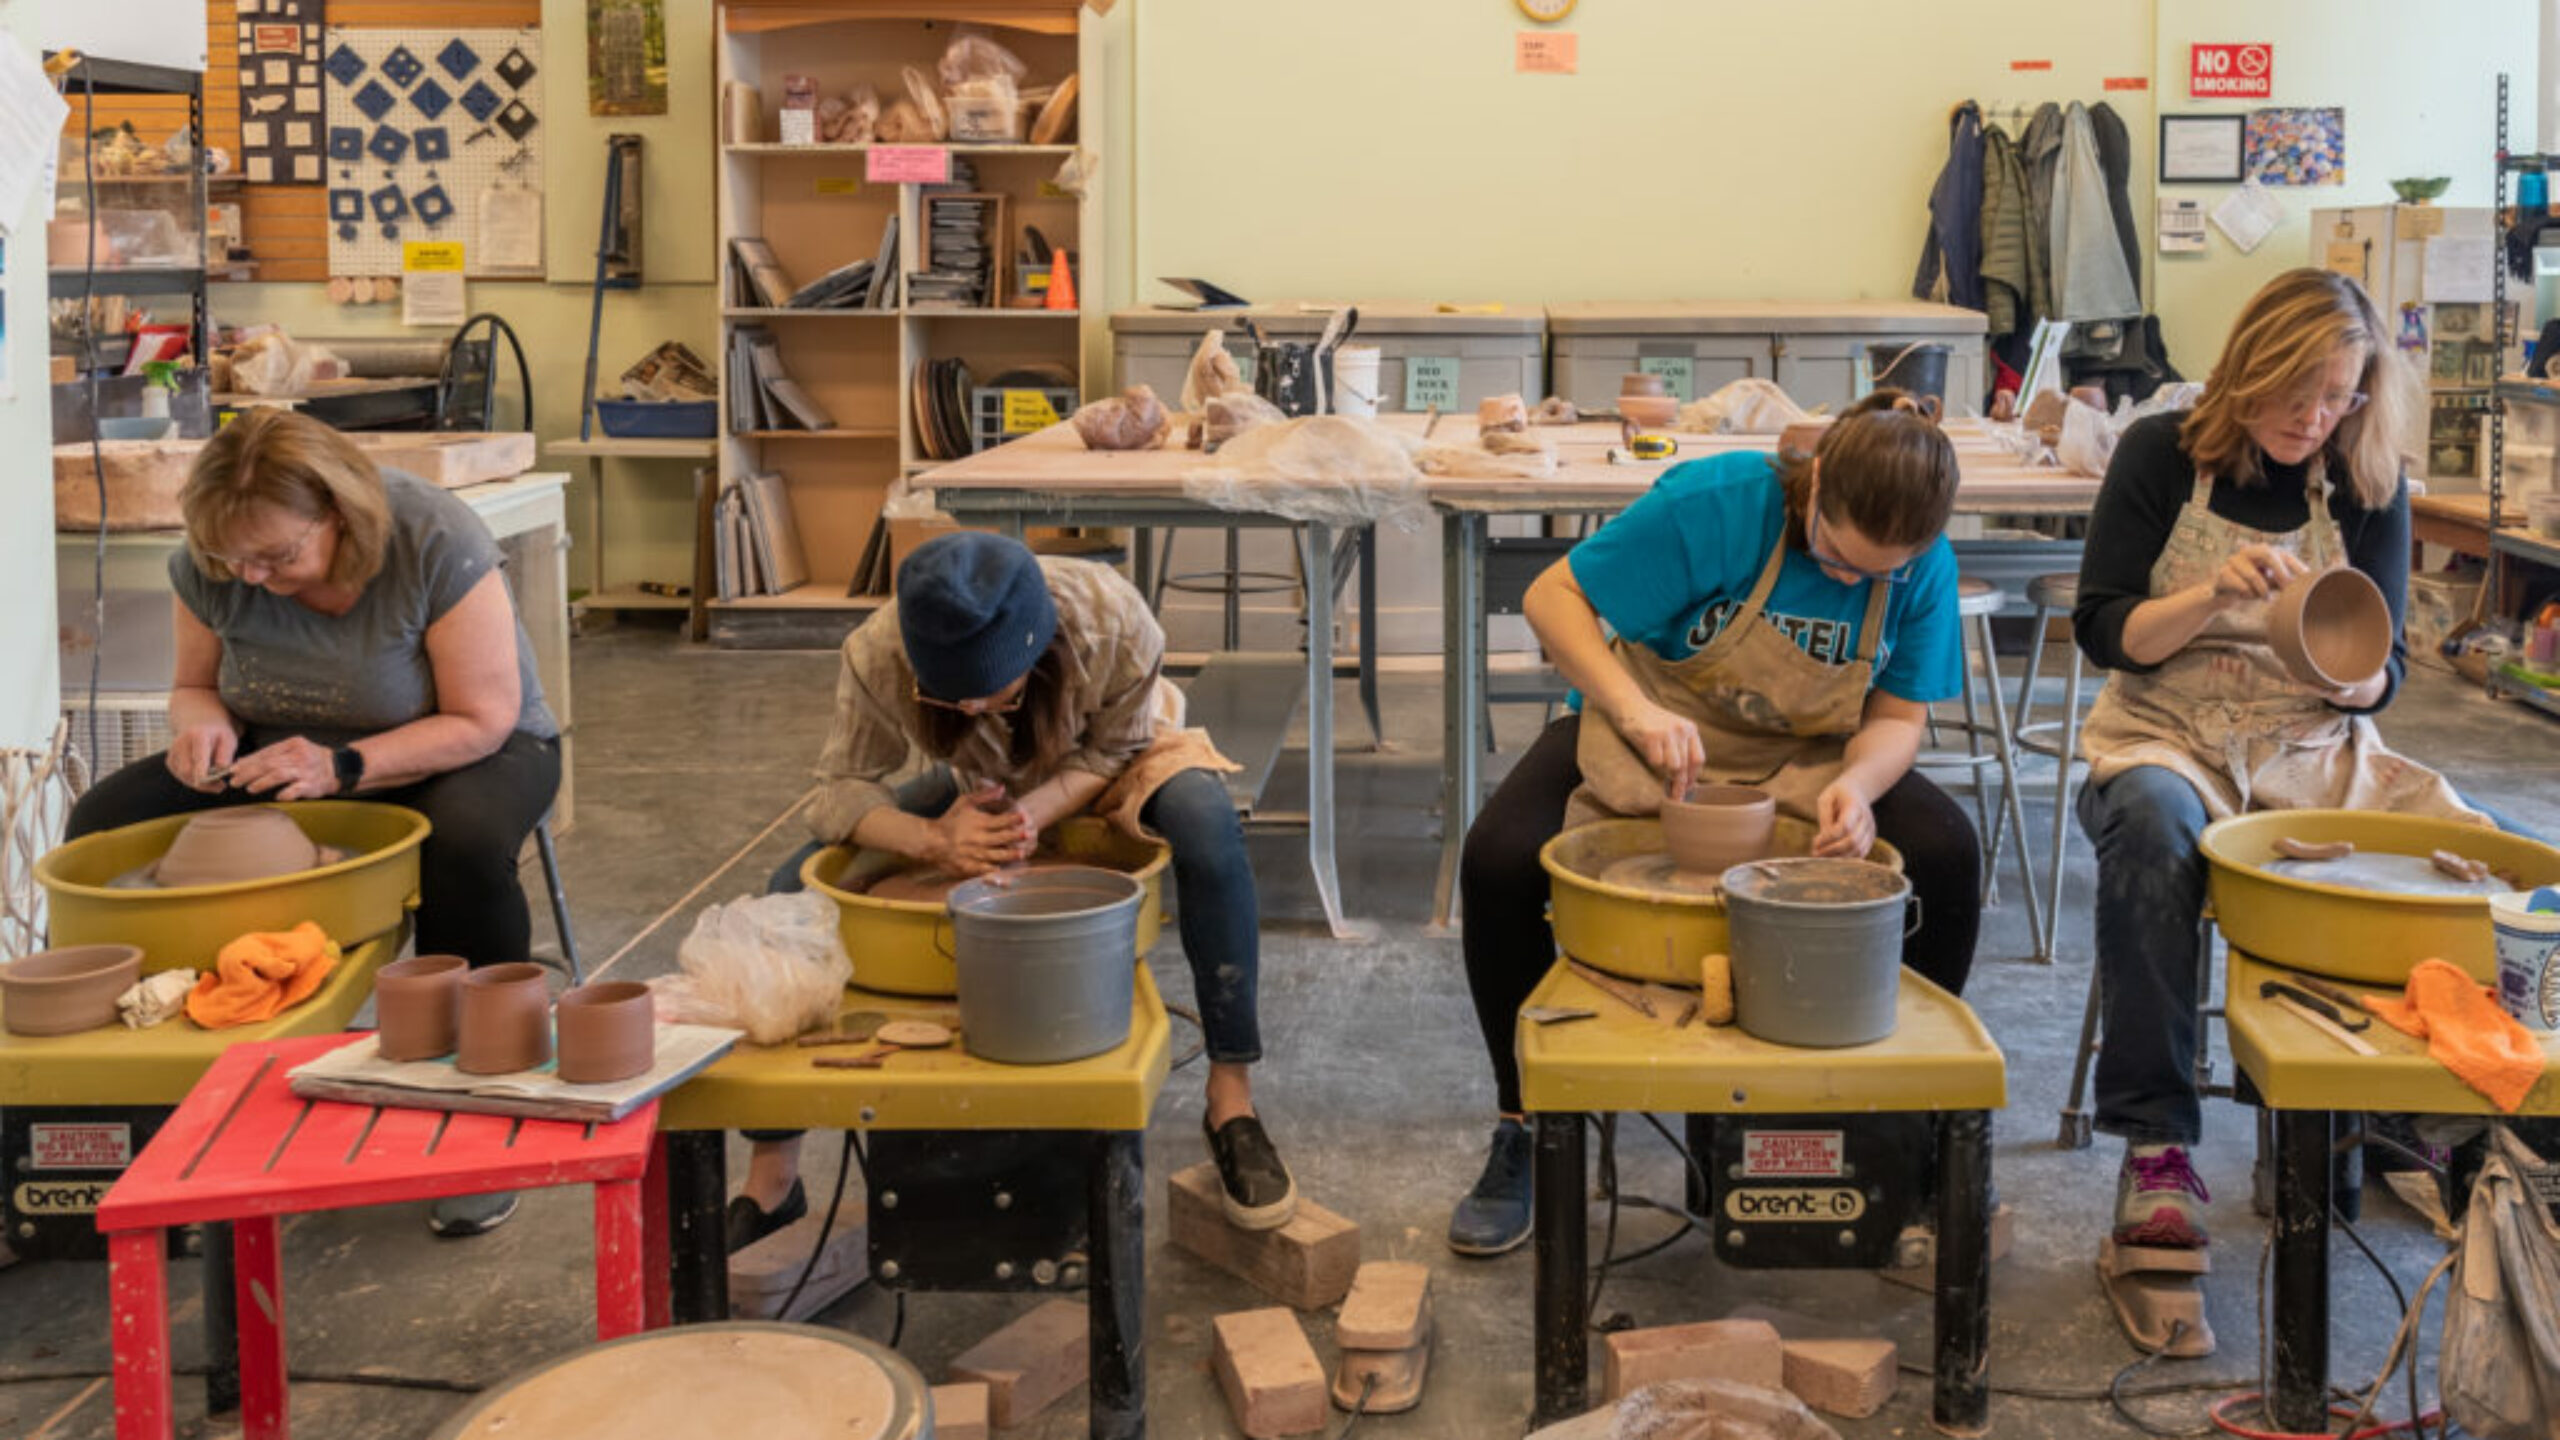 Four female students work at pottery wheels in a row